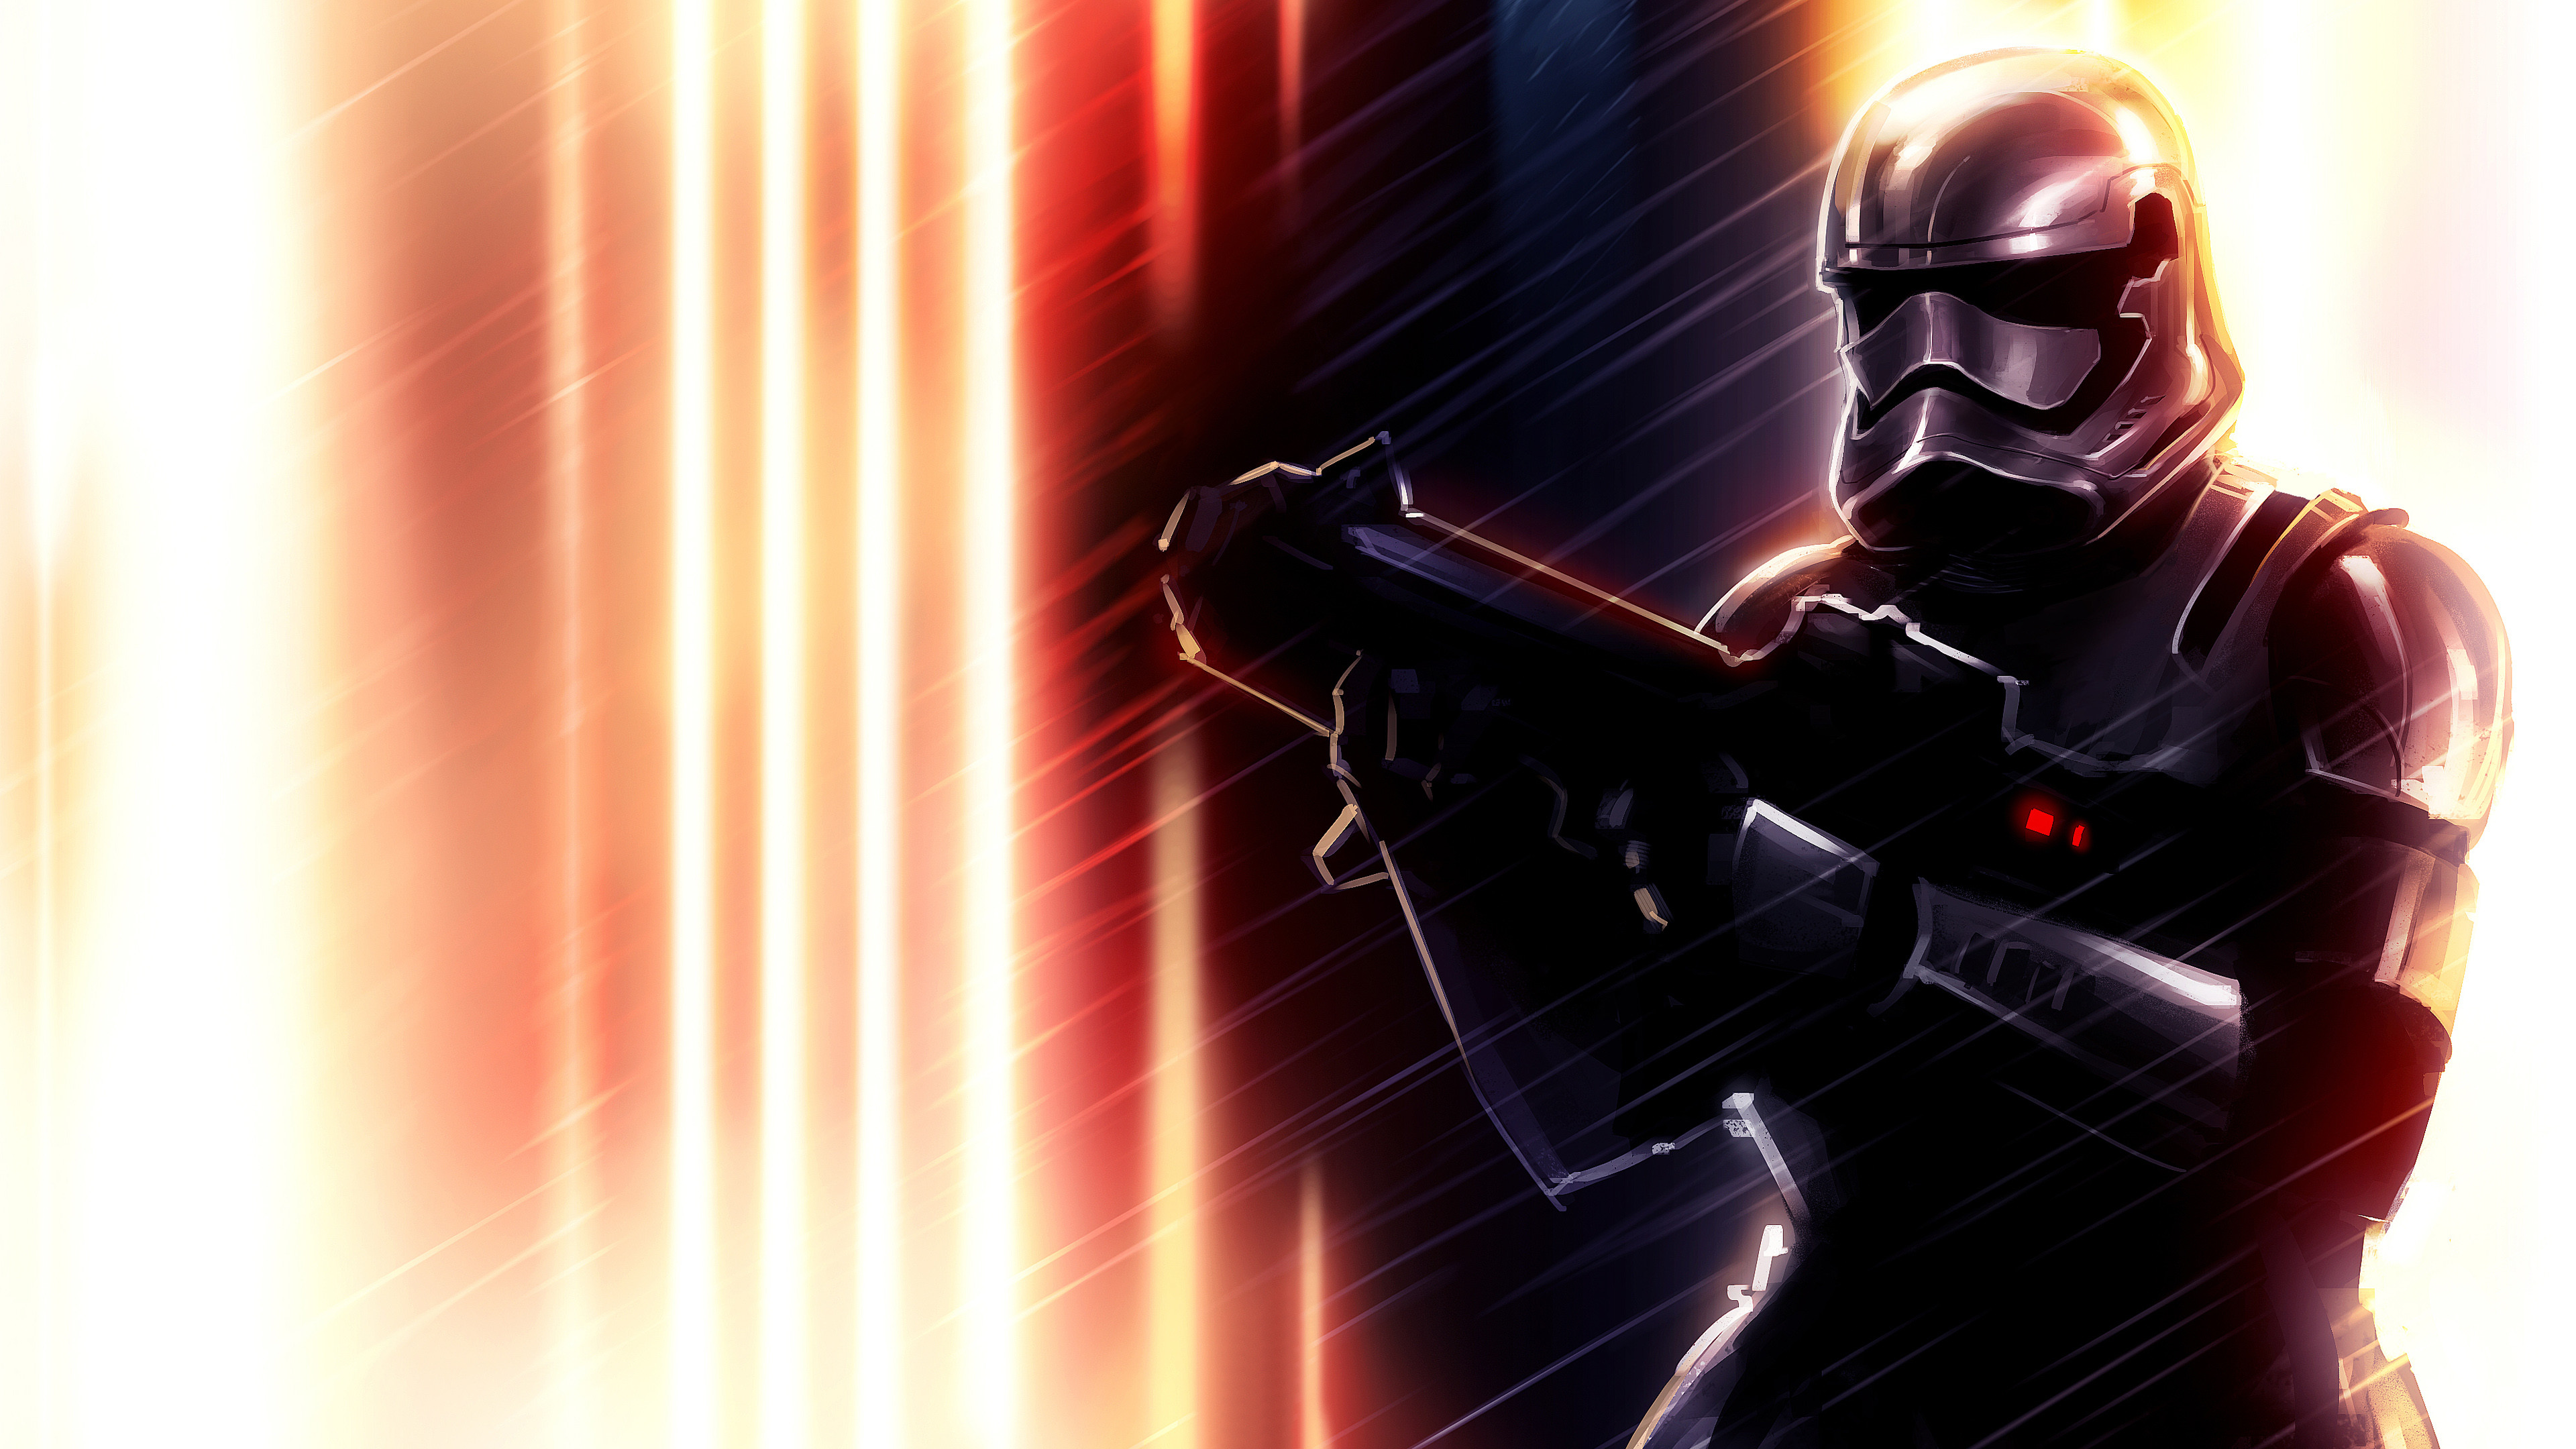 Res: 3840x2160, Tags: Stormtrooper